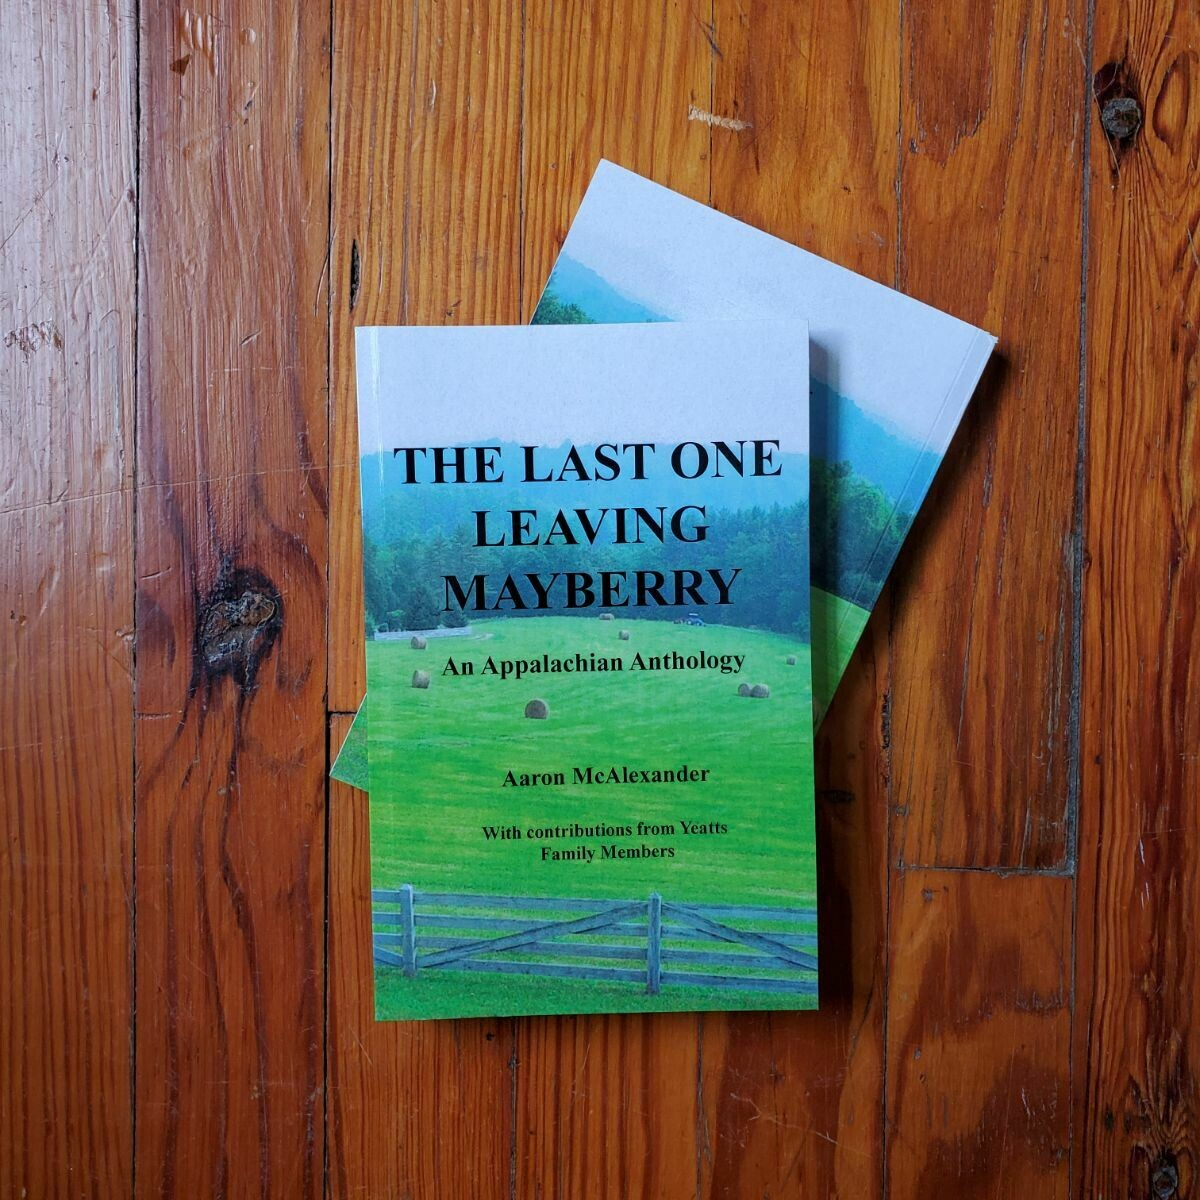 The Last One Leaving Mayberry by: Aaron McAlexander